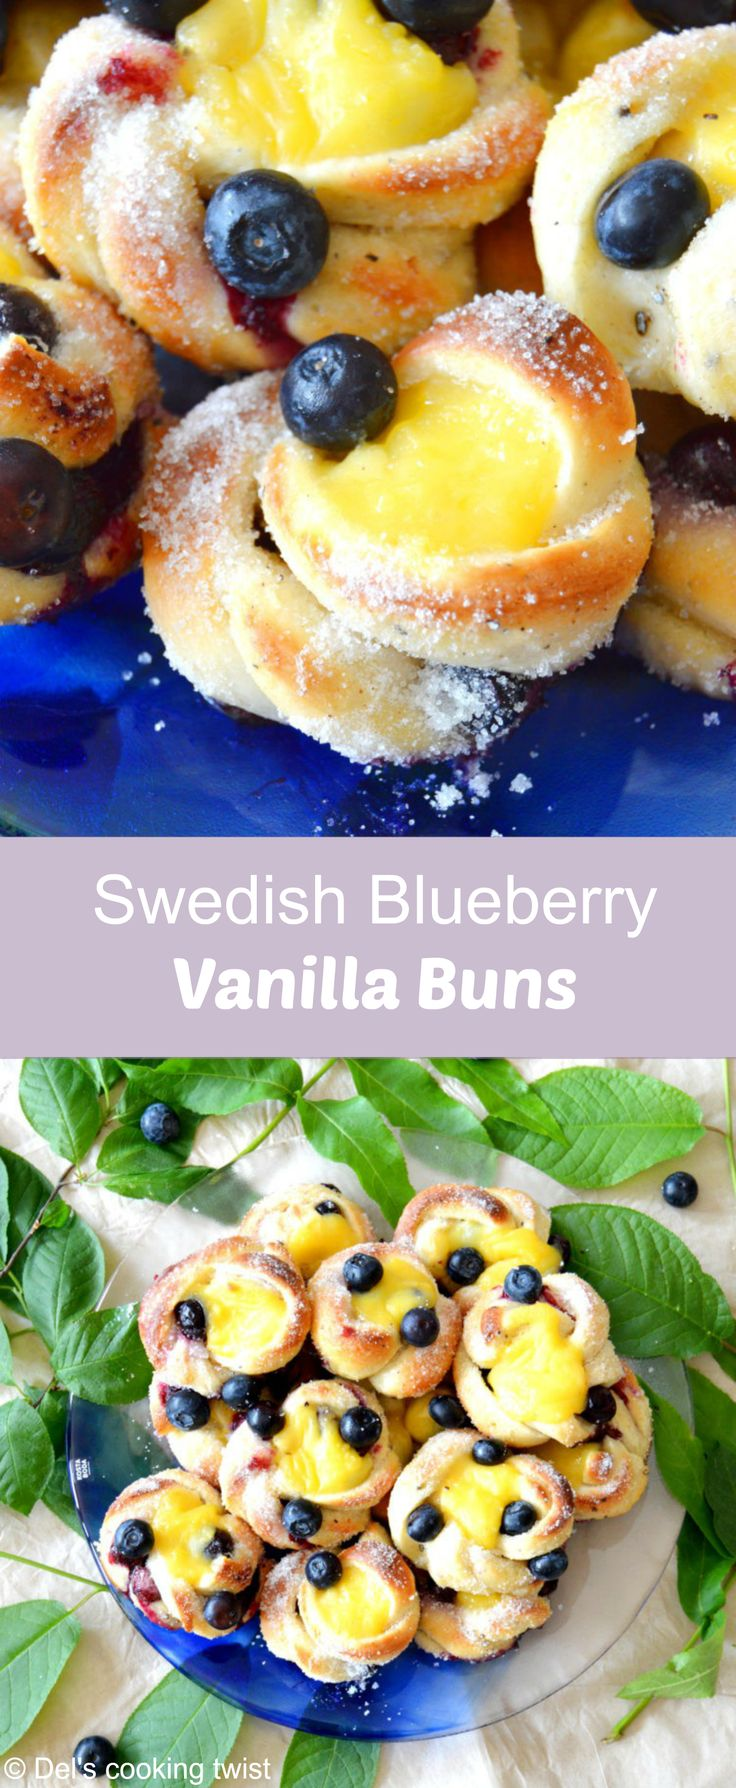 Baked with fresh berries, a delicious vanilla cream and a kick of cardamom, these sweet buns are off the chart! | Del's cooking twist